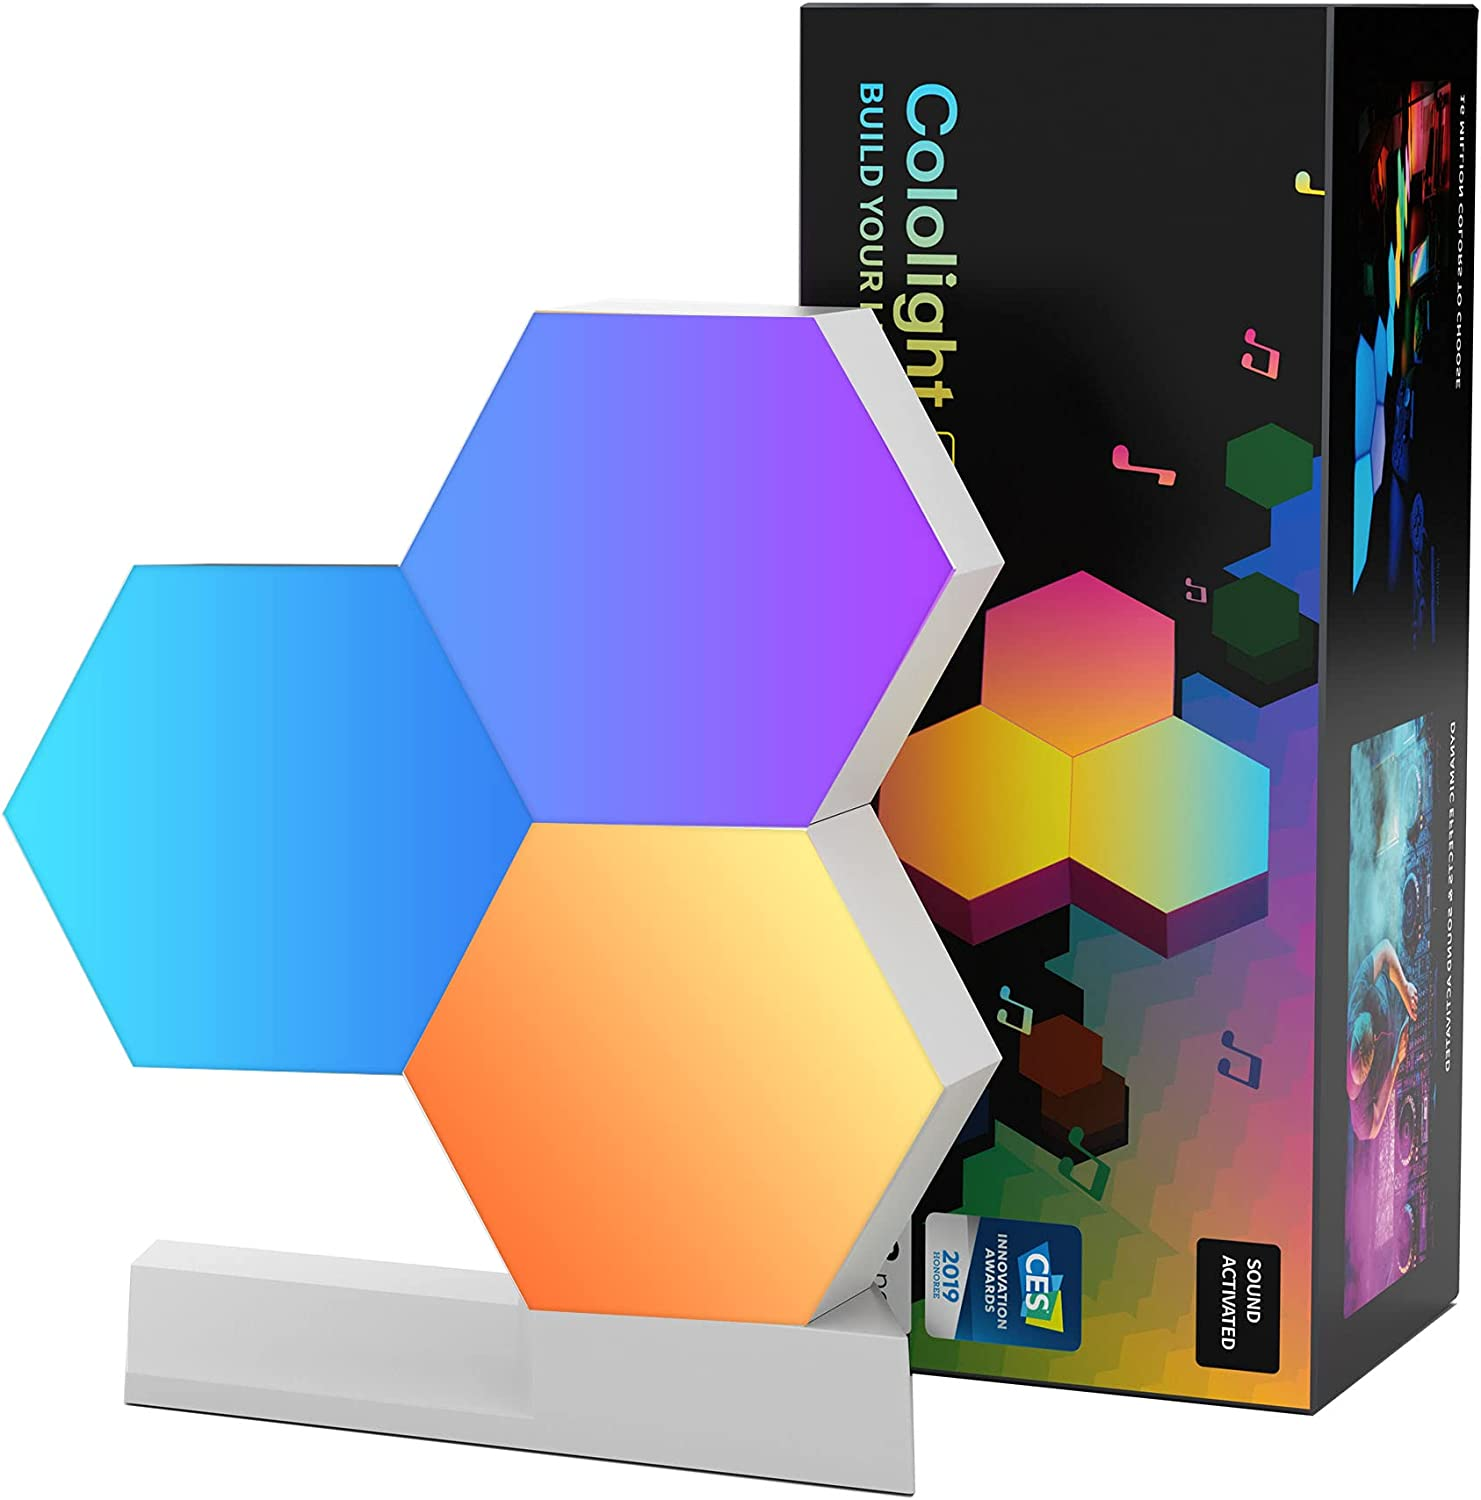 Cololight Hexagon LED Light Works with Alexa, Google Assistant, APP Controlled WiFi Smart RGB Light Panels, Cololight Geometric Lamp, DIY Panel Lights for Gaming Decoration, 3pcs Pro Kit